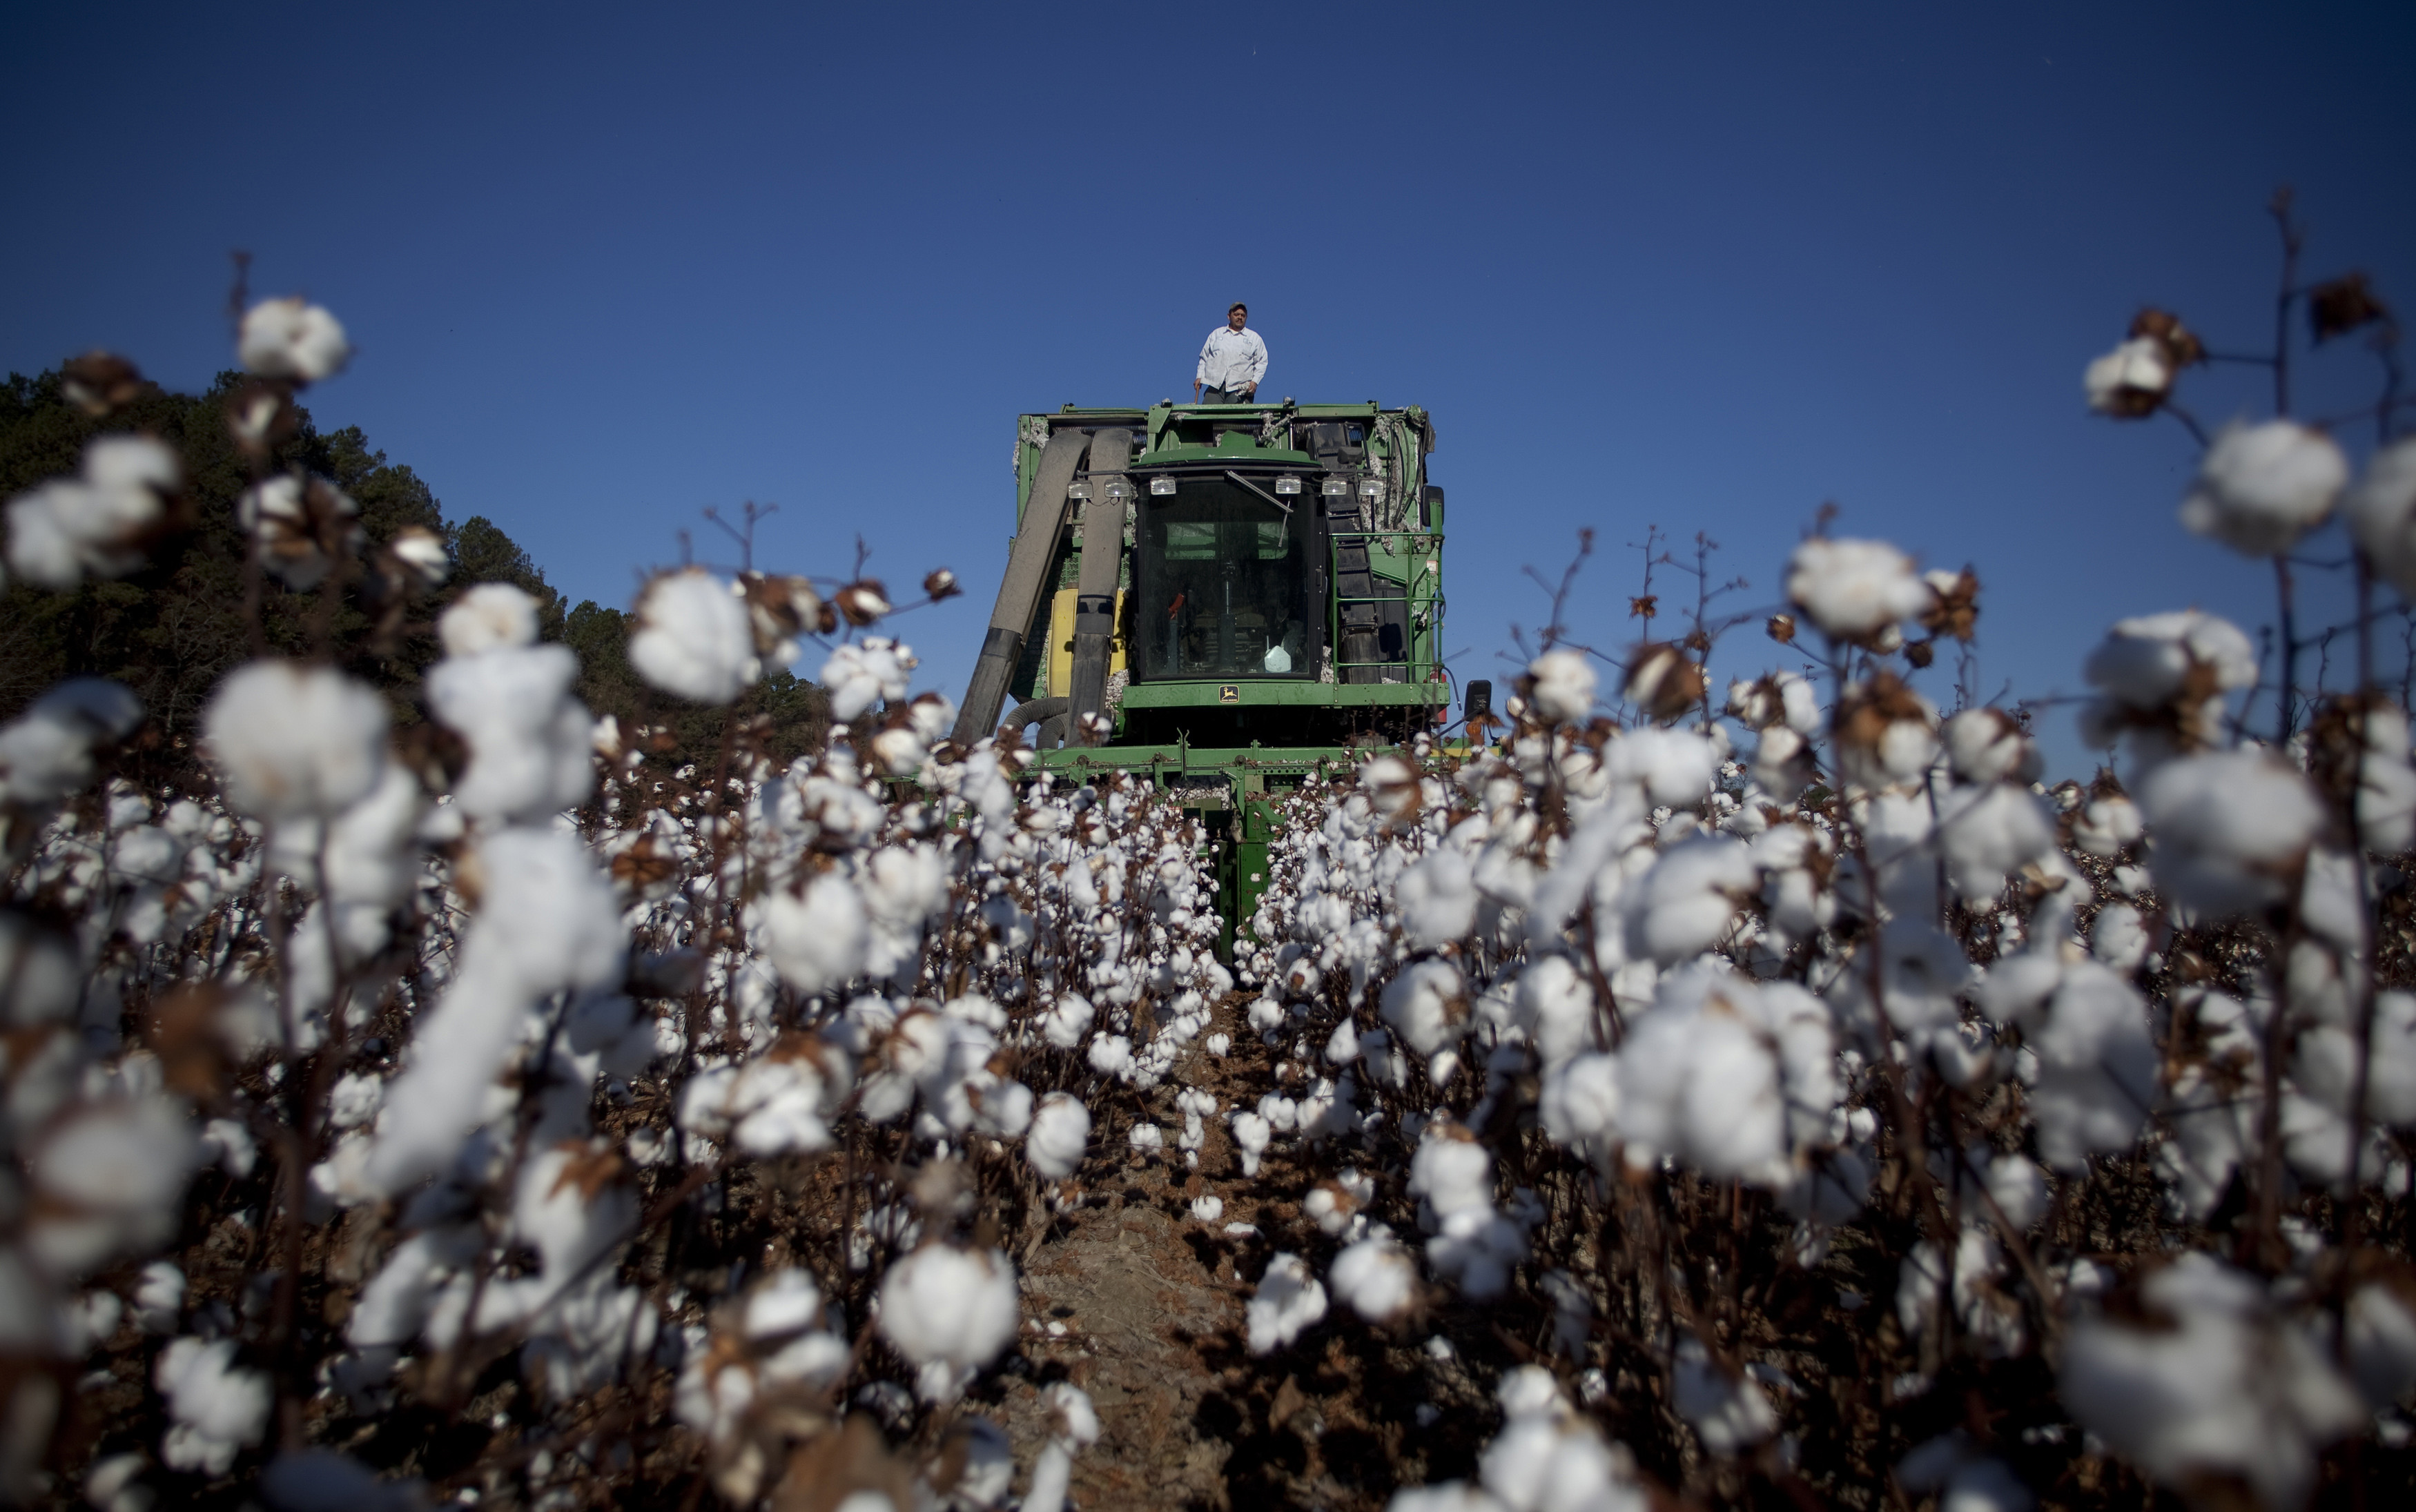 Operator James Grooms stands on top of a cotton picker at Baxley & Baxley Farms as he waits for cotton to be unloaded, in Minturn, South Carolina November 24, 2012. The third generation farm, located along South Carolina's cotton corridor, harvested just under 1100 acres of cotton this season. The Baxley family plants several crops but cotton is the cash crop and the most profitable. Picture taken November 24, 2012.